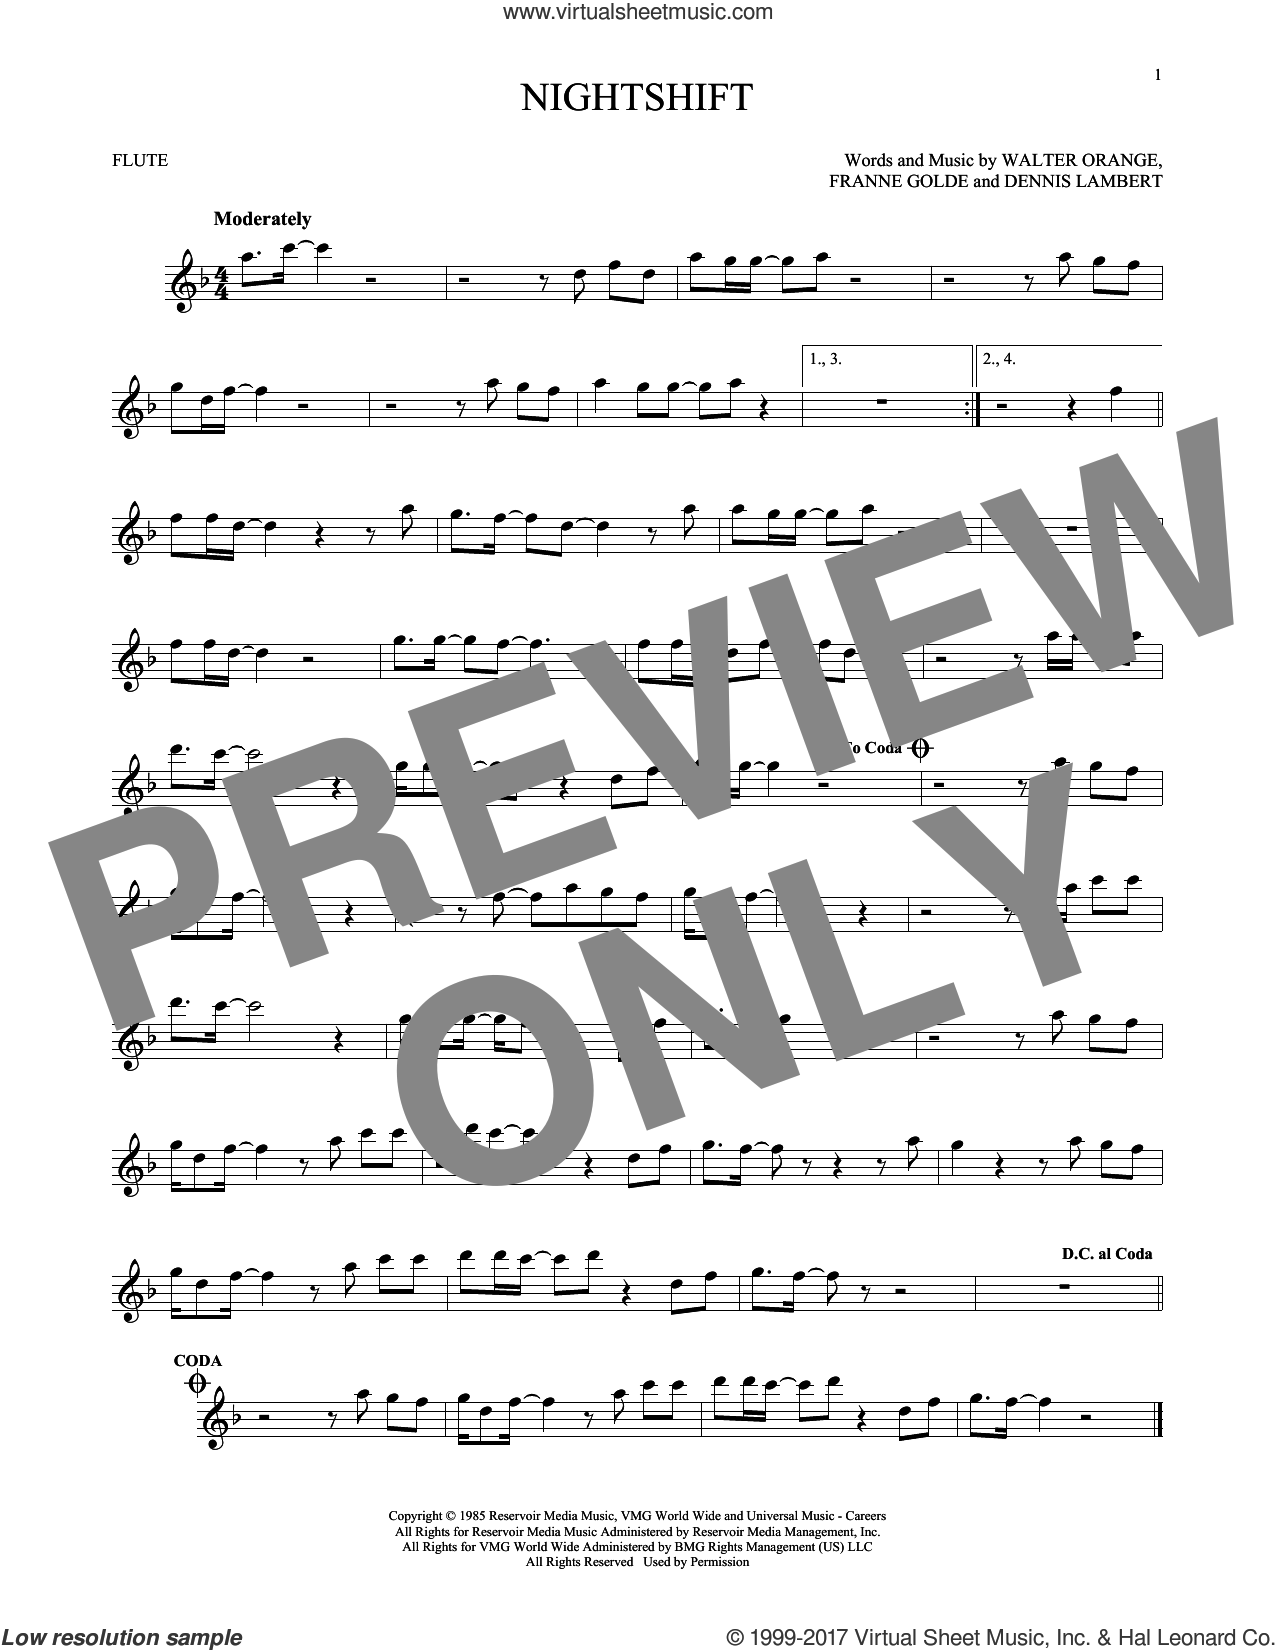 Nightshift sheet music for flute solo by Dennis Lambert, The Commodores, Franne Golde and Walter Orange, intermediate skill level